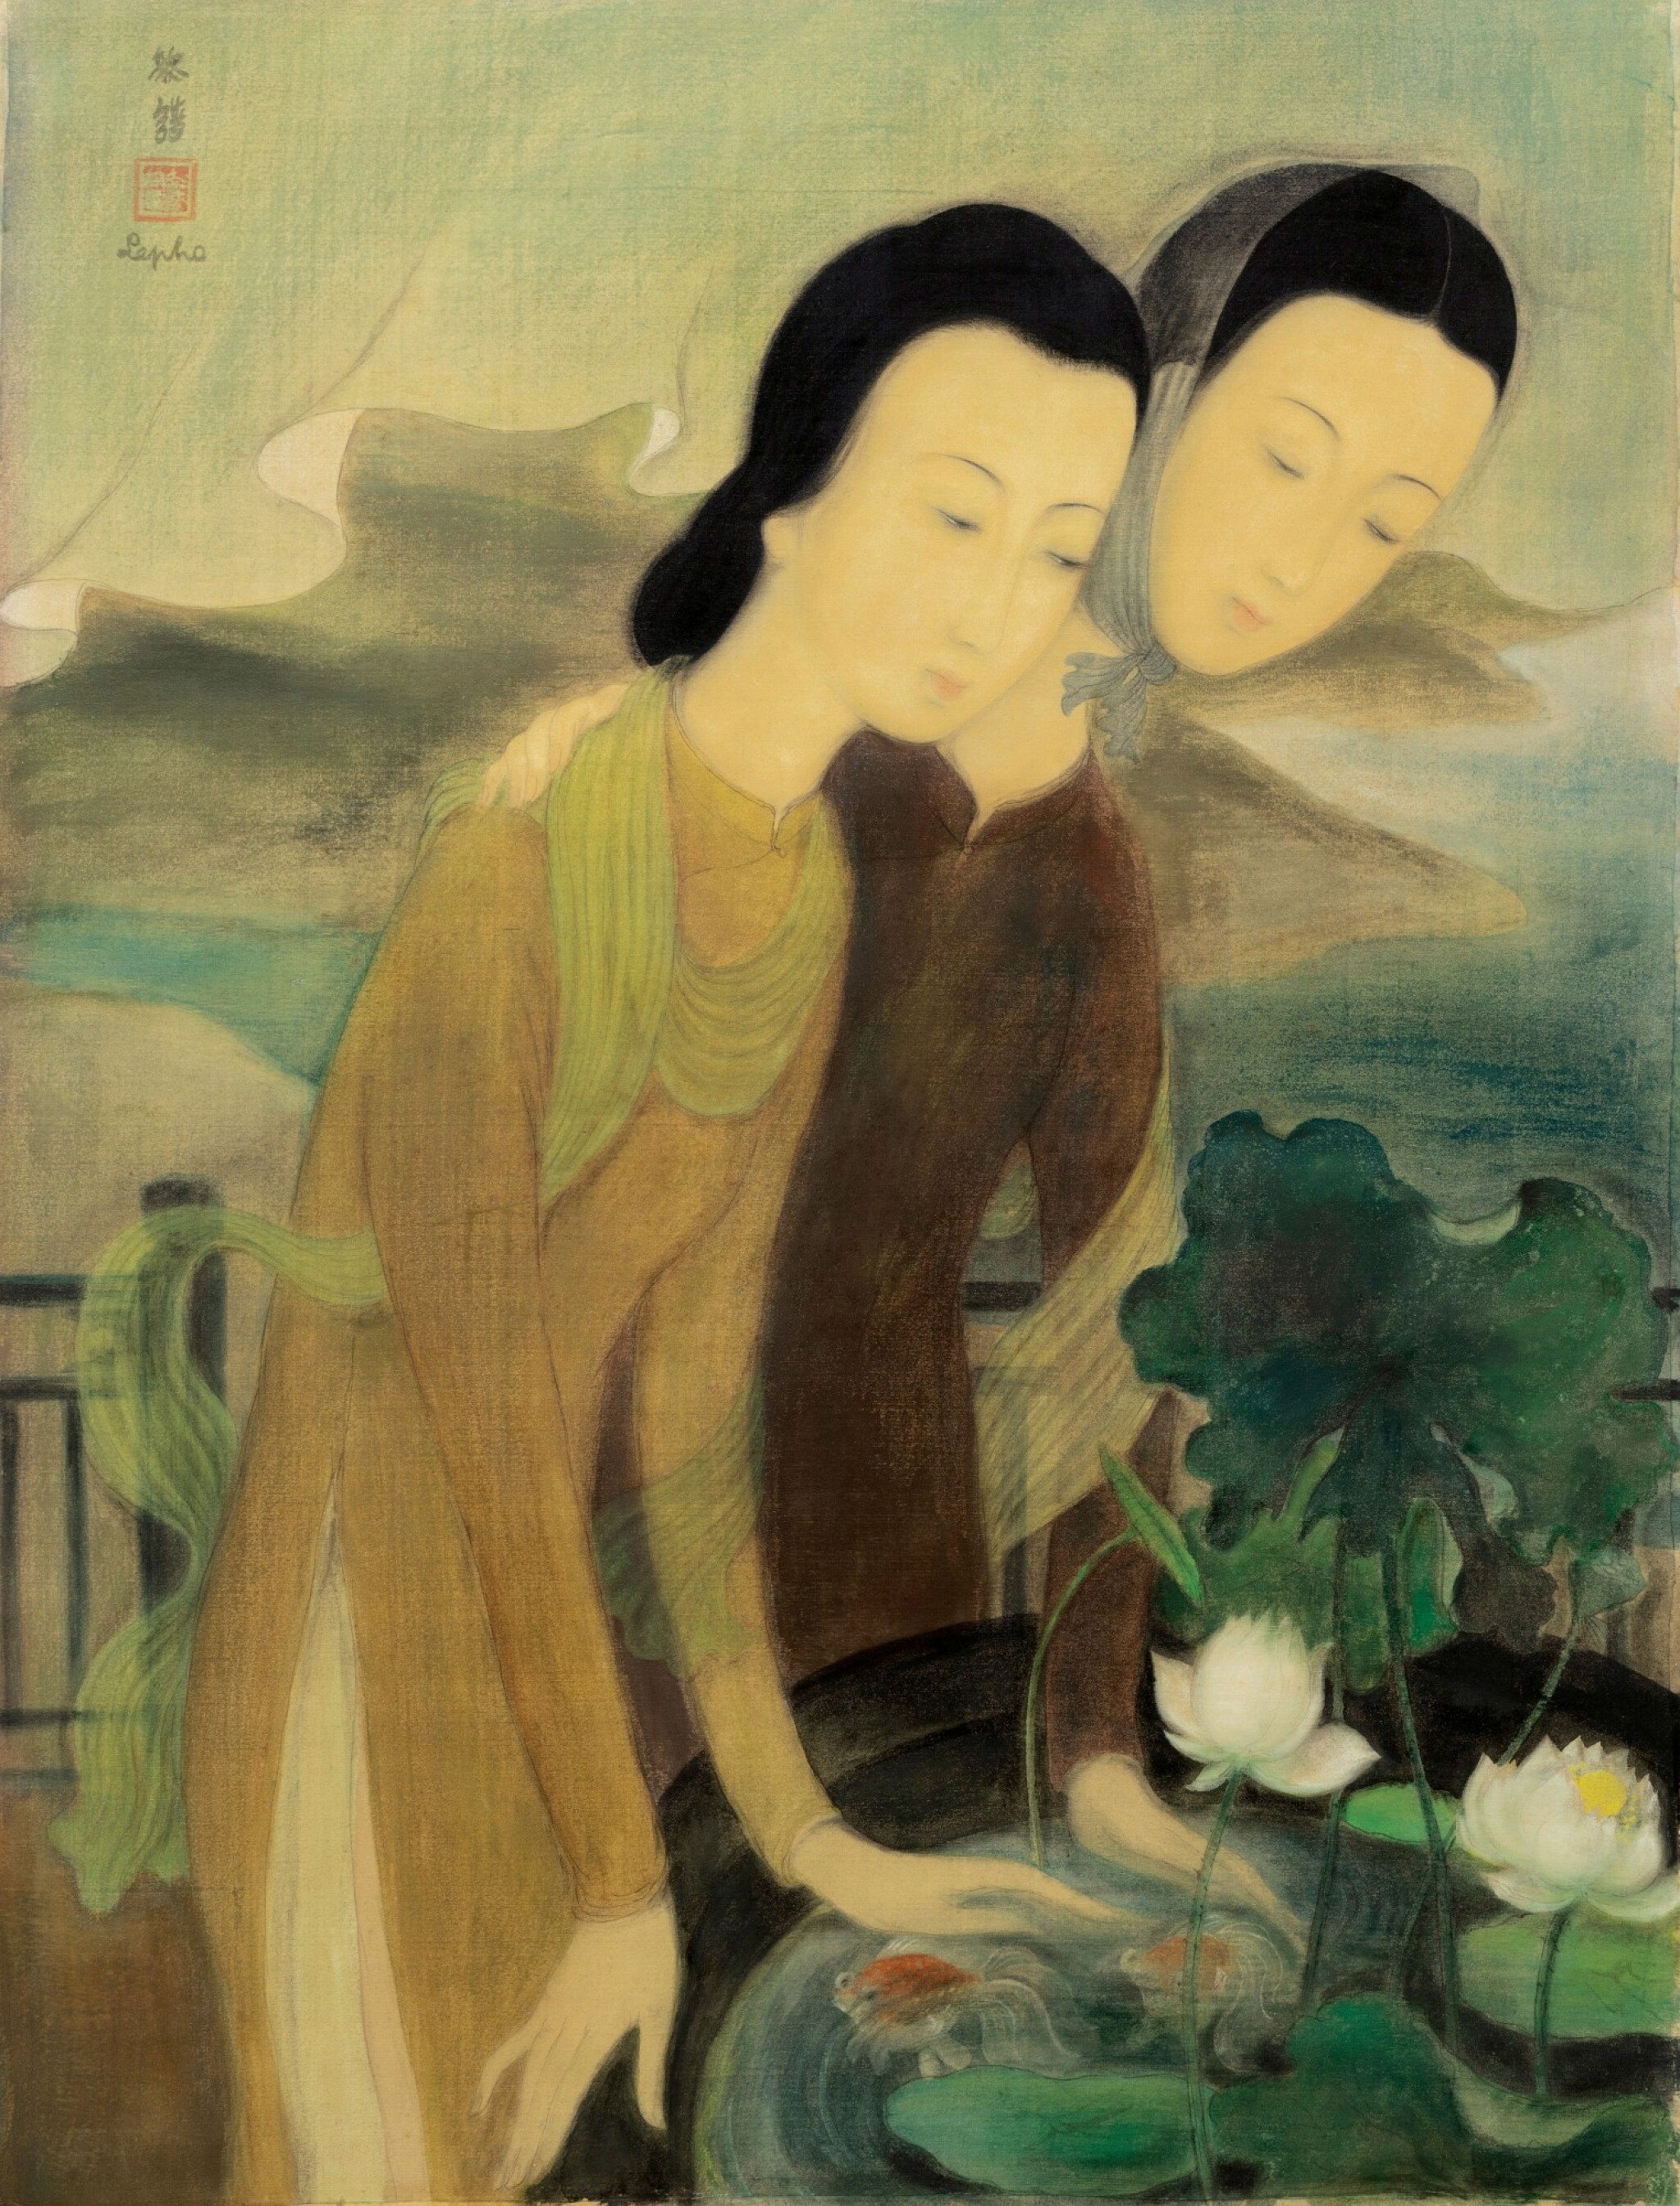 View full screen - View 1 of Lot 1014. Le Pho 黎譜 | Two Women Overlooking a Goldfiish Pond 俯瞰金魚池的兩位女子.